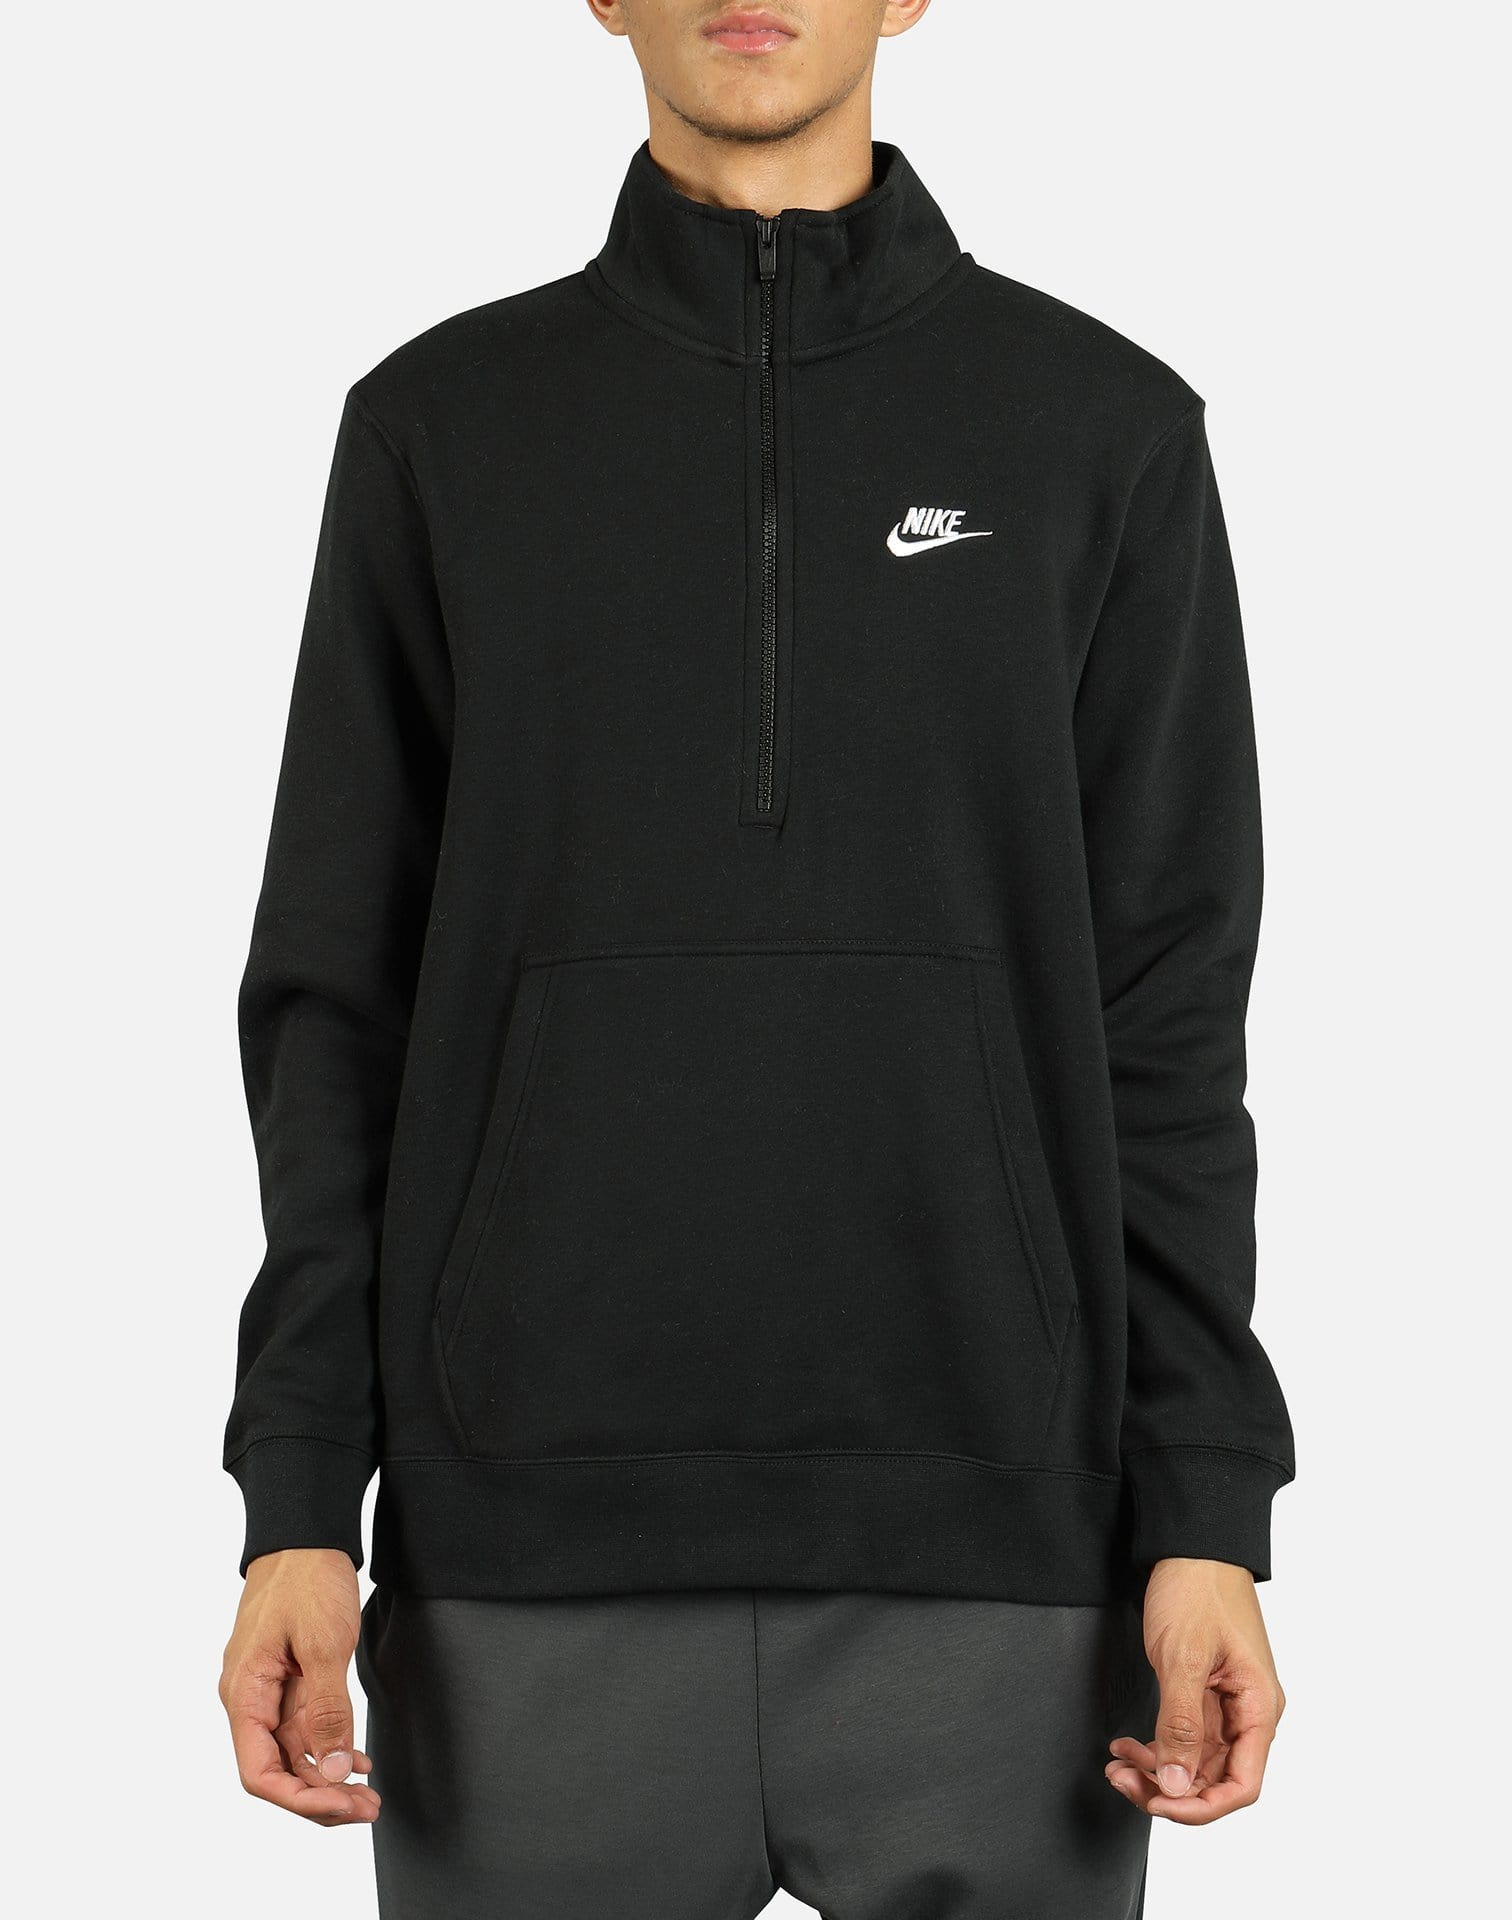 Nike NSW Men's Club Brushed Fleece Half Zip Sweatshirt